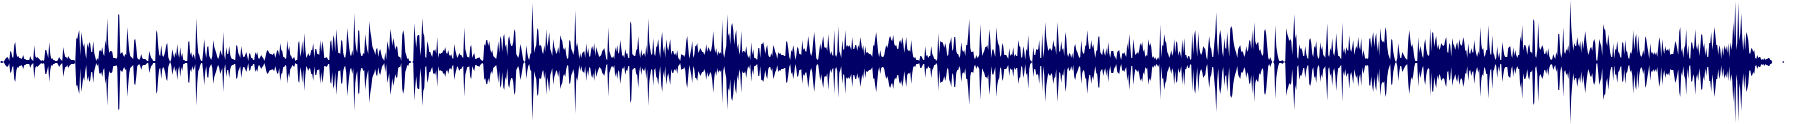 waveform of track #69119